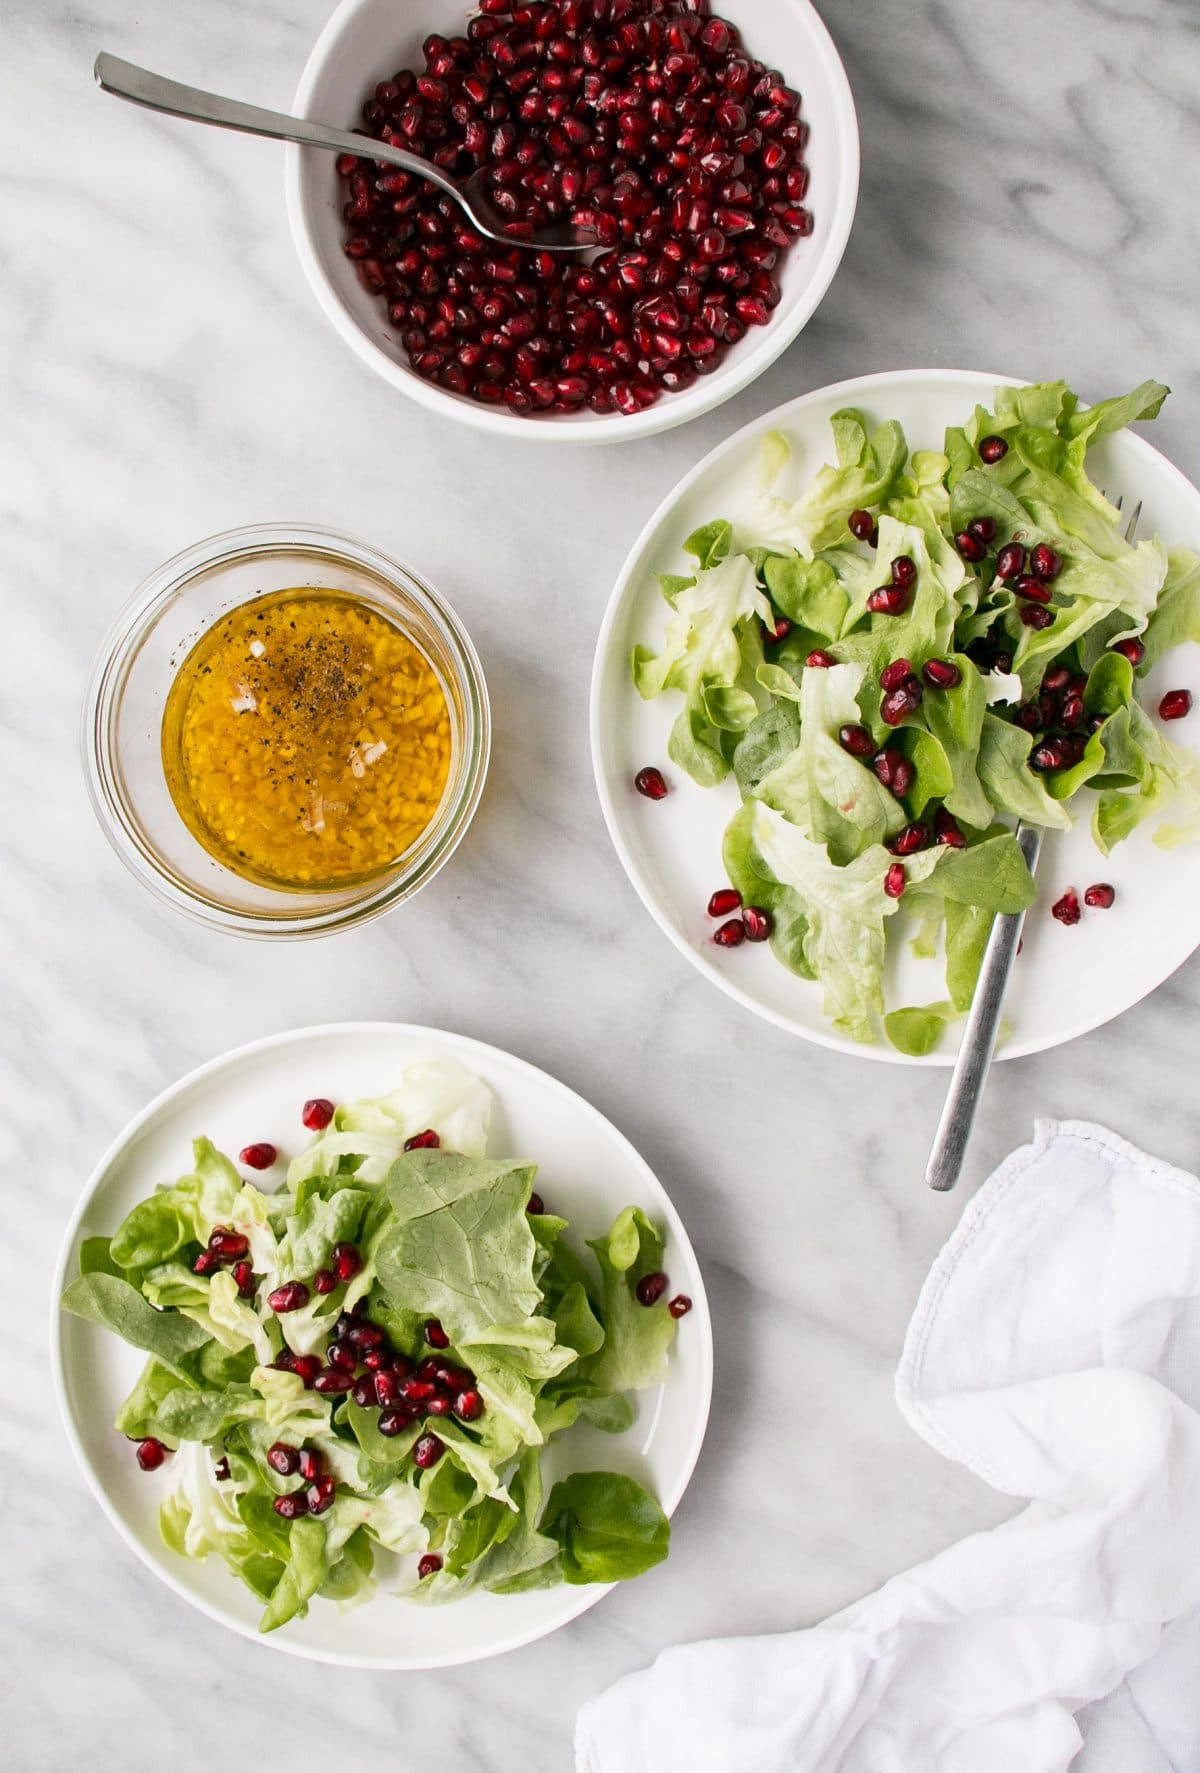 5 Ingredient Christmas Salad for al the potlucks and a little good health during the holidays. Simple, delicious, and a family favourite. #salad #christmas